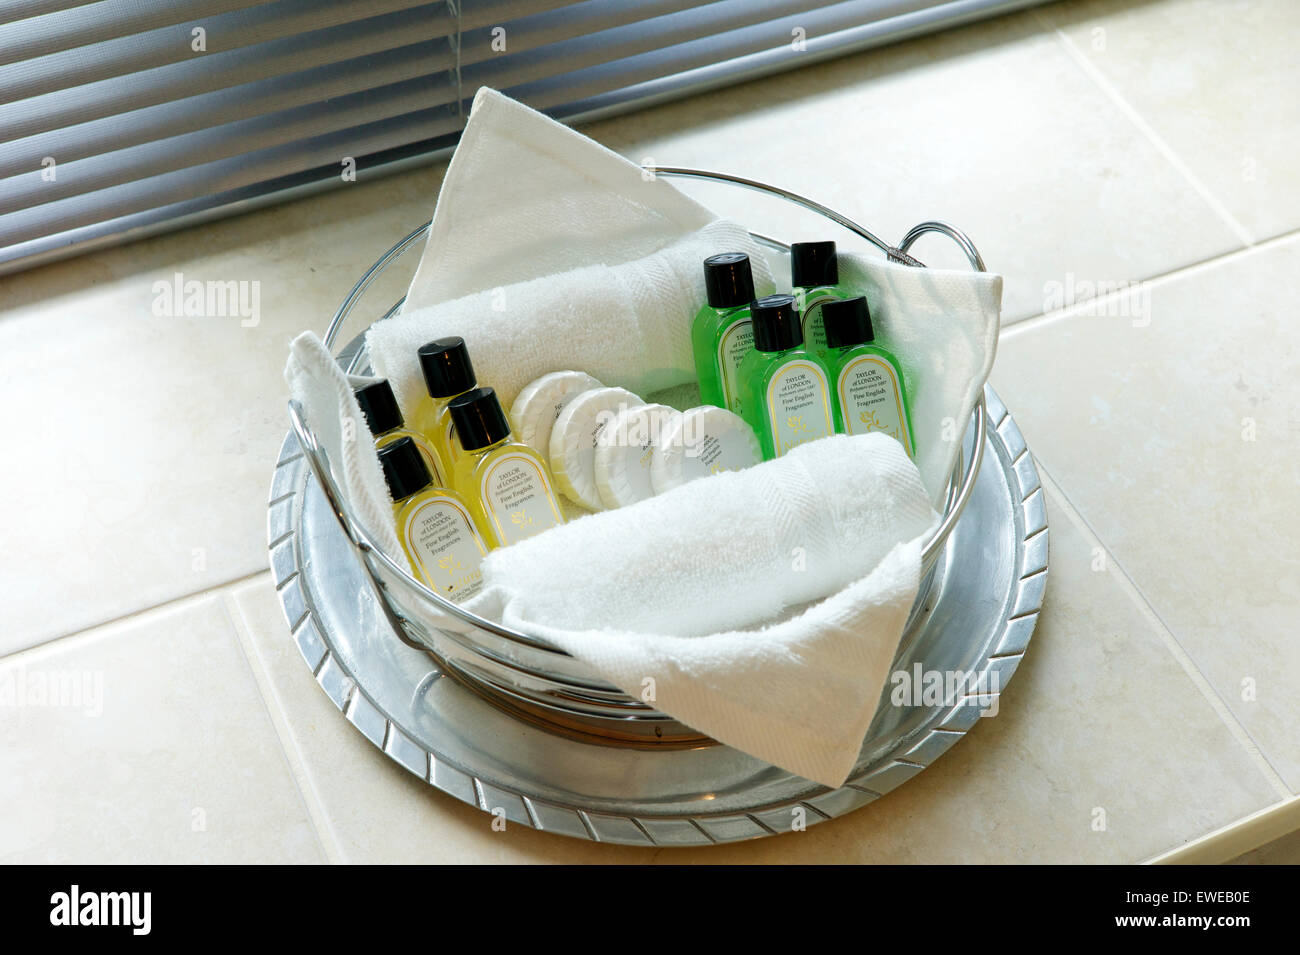 Selection of toiletries in hotel bathroom - Stock Image